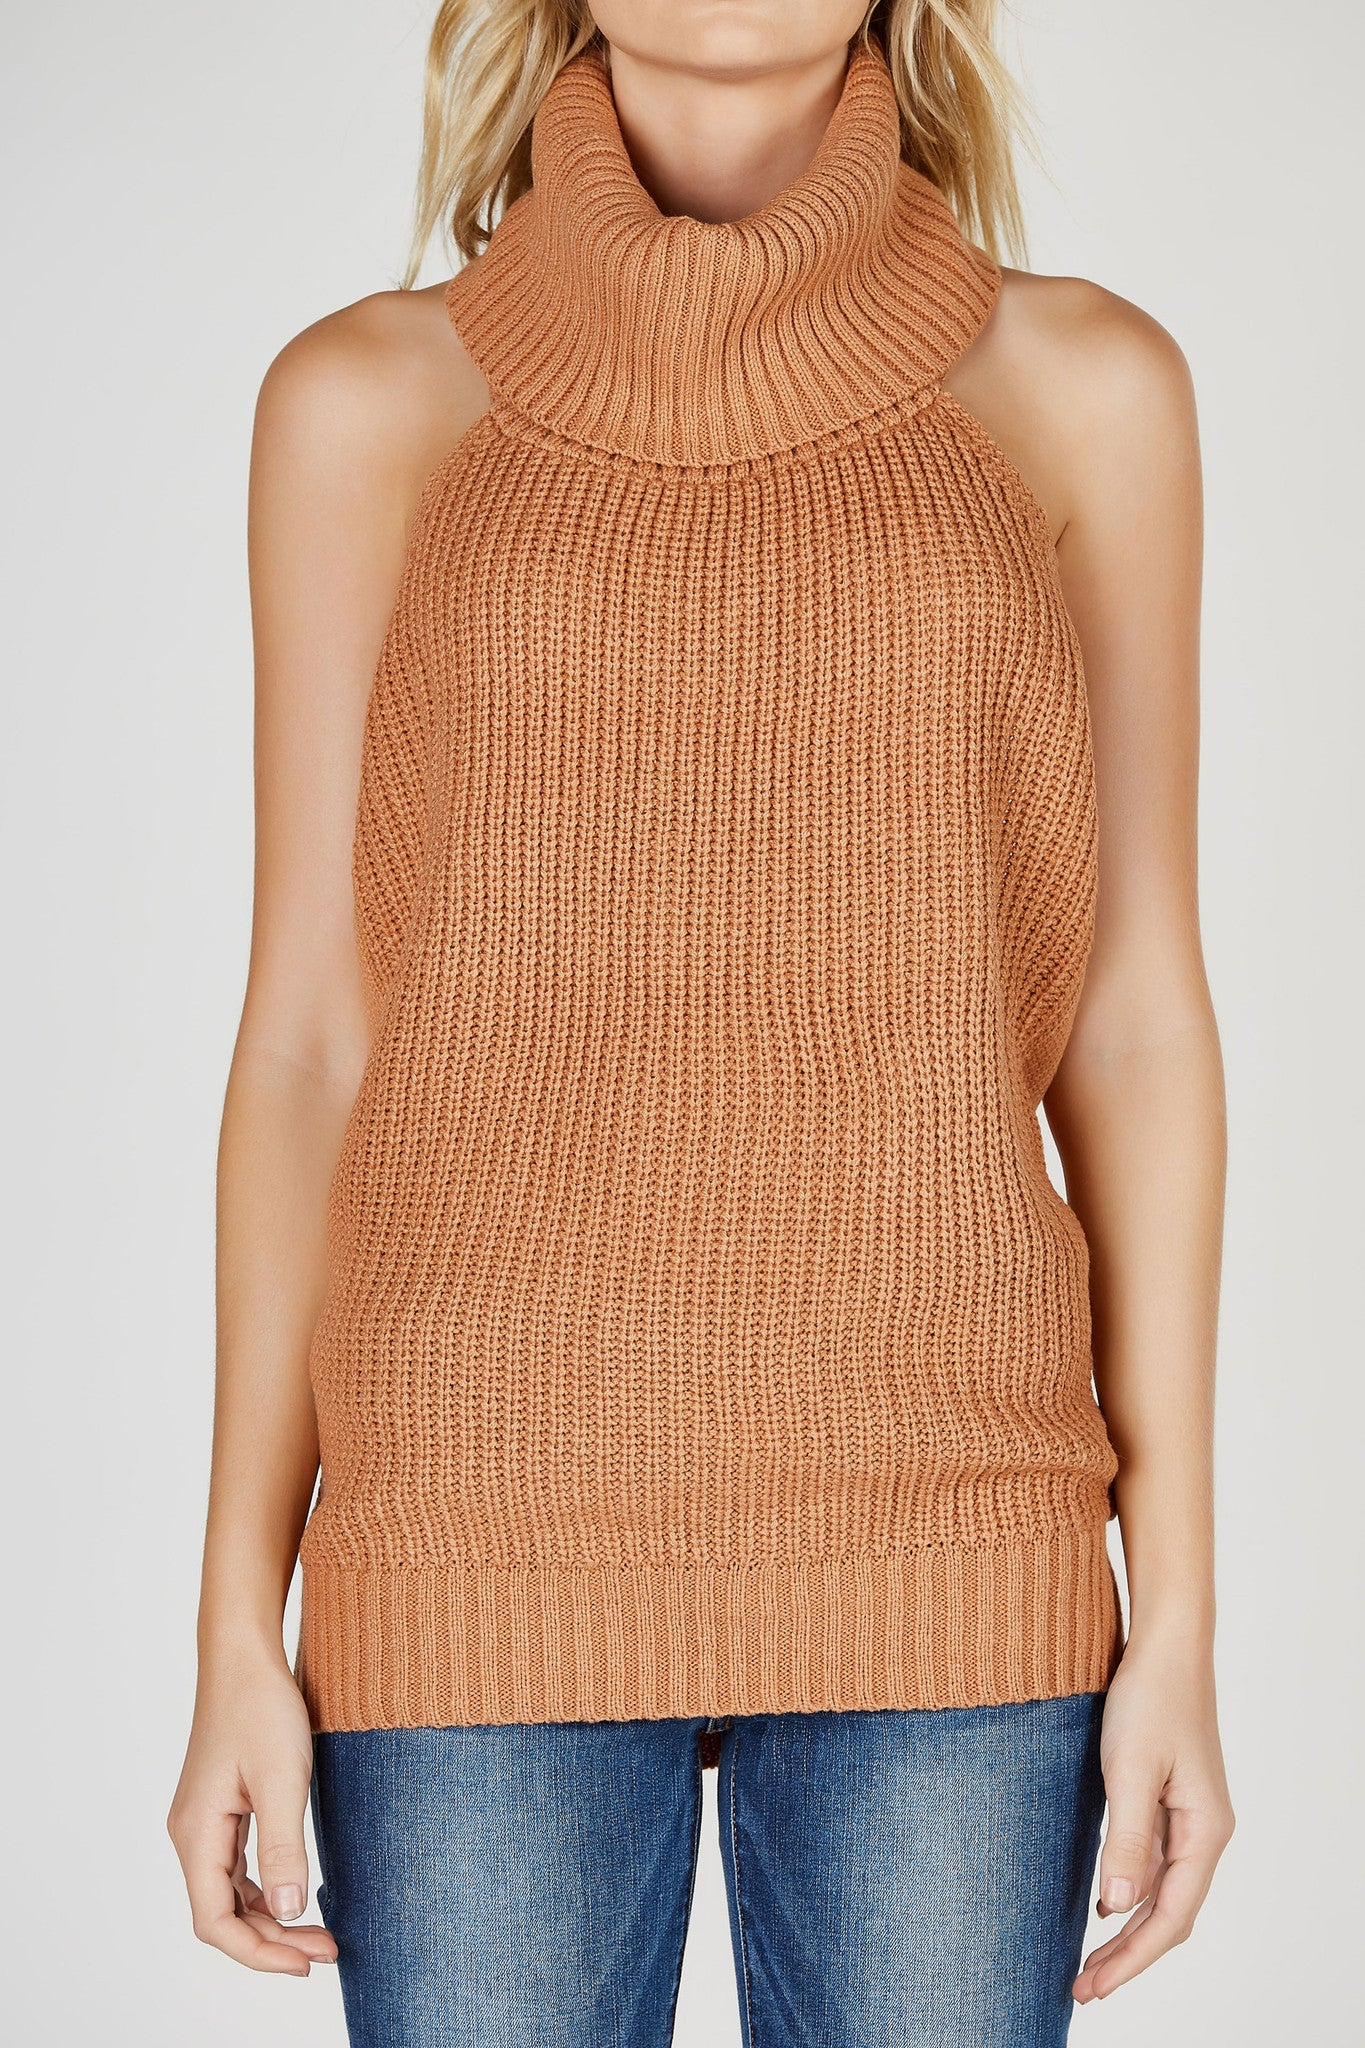 A chic cozy knit sweater top with a slouchy turtleneck. Great to layer under cardigans and jackets or to wear on its own with skinny jeans. Gorgeous open back makes it a perfect transitional piece.